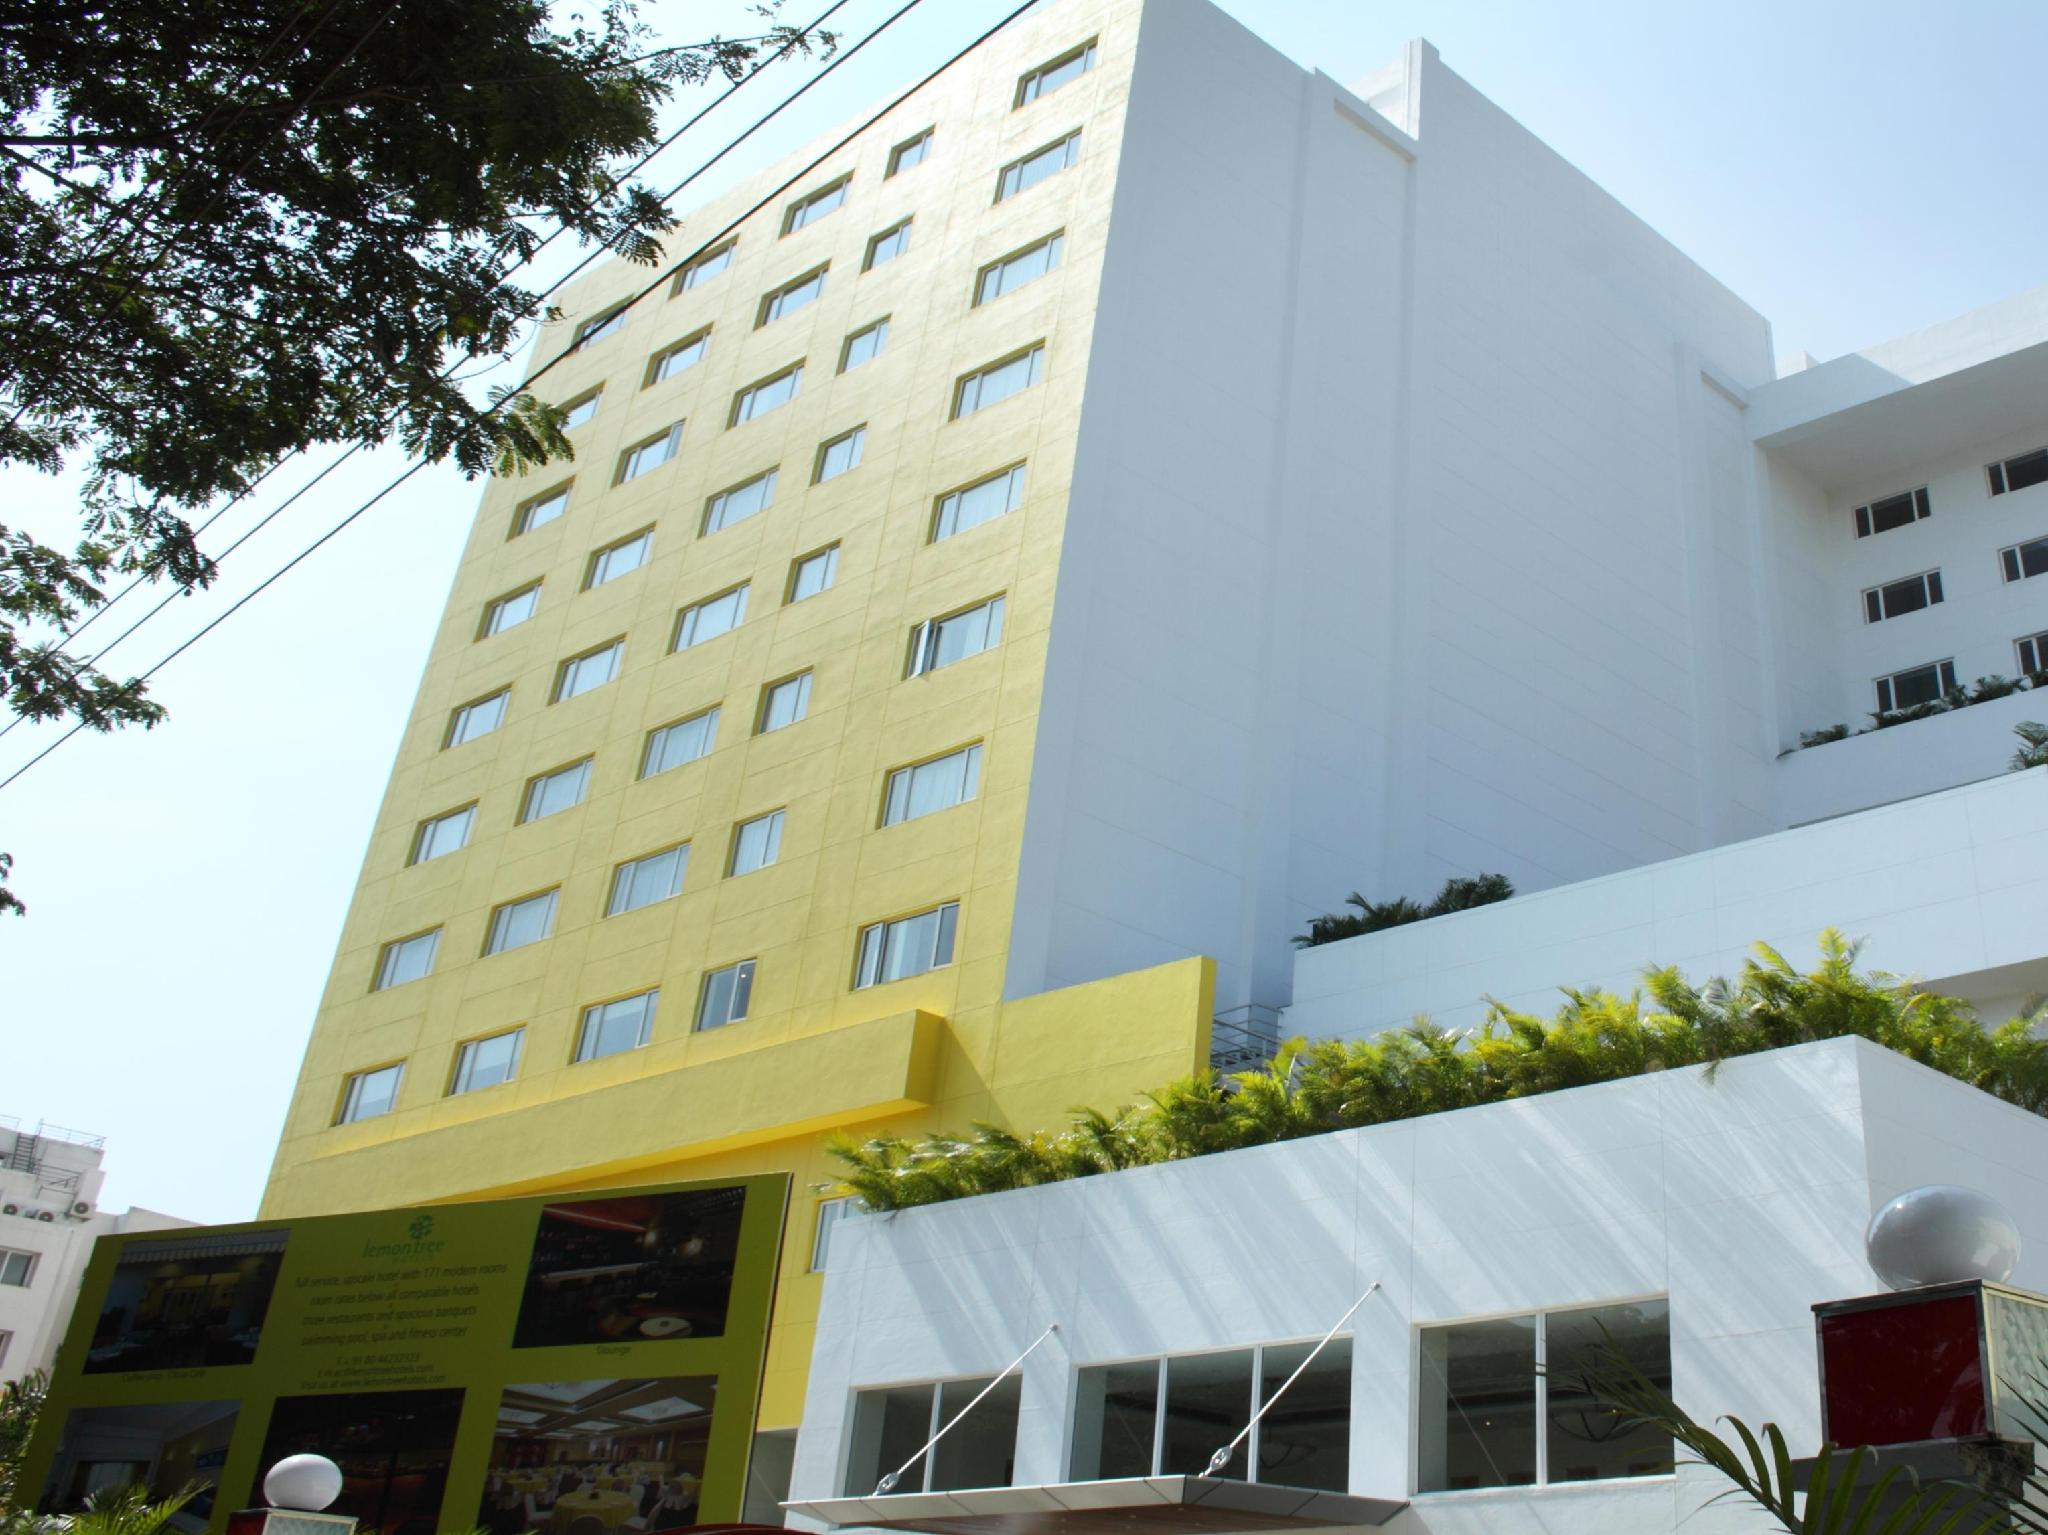 Lemon Tree Hotel - Electronics City - Hotel and accommodation in India in Bengaluru / Bangalore